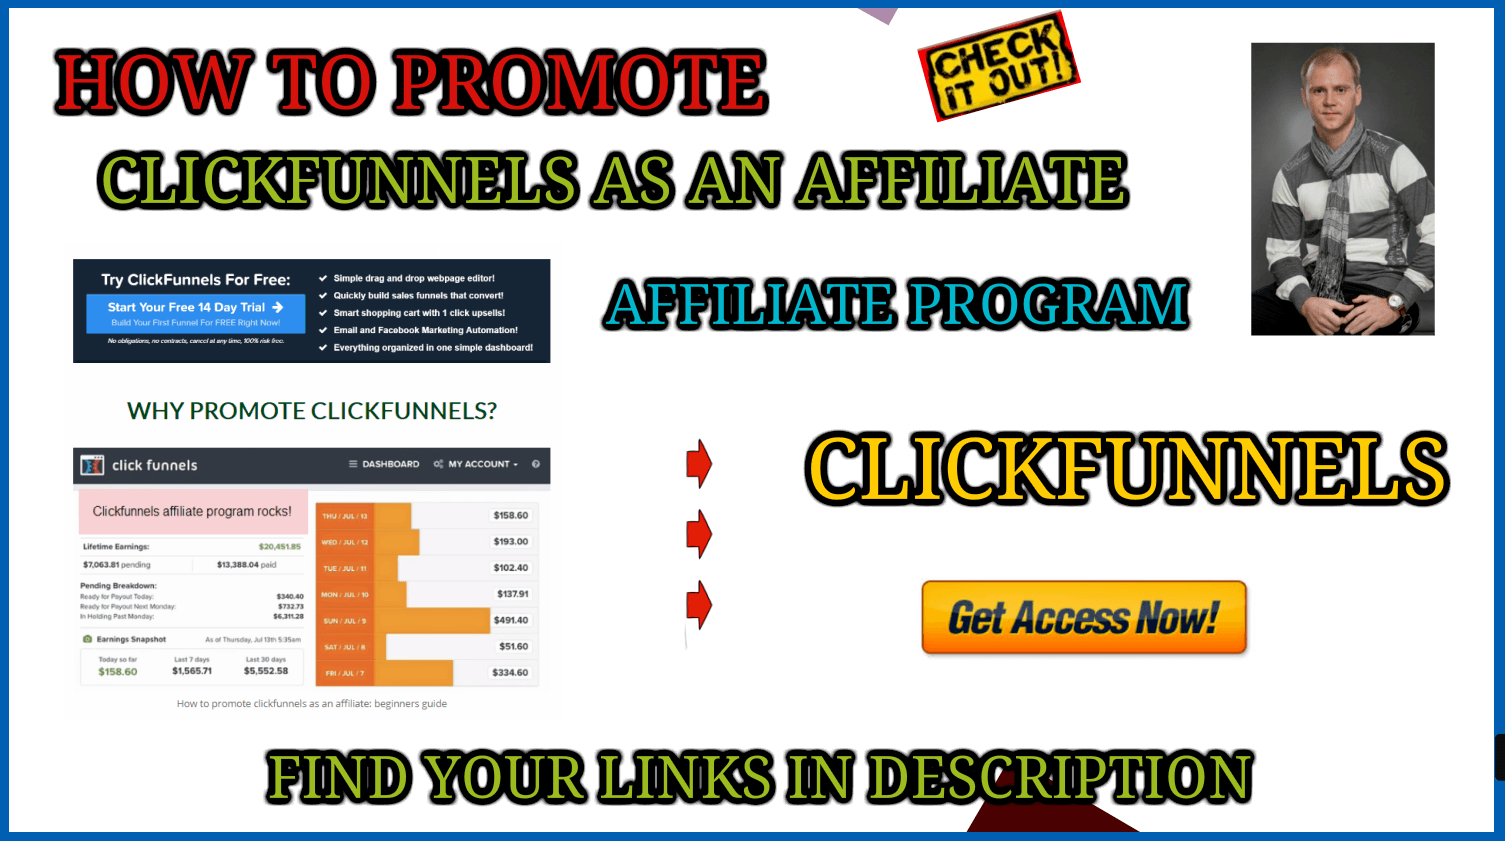 How to promote clickfunnels as an affiliate